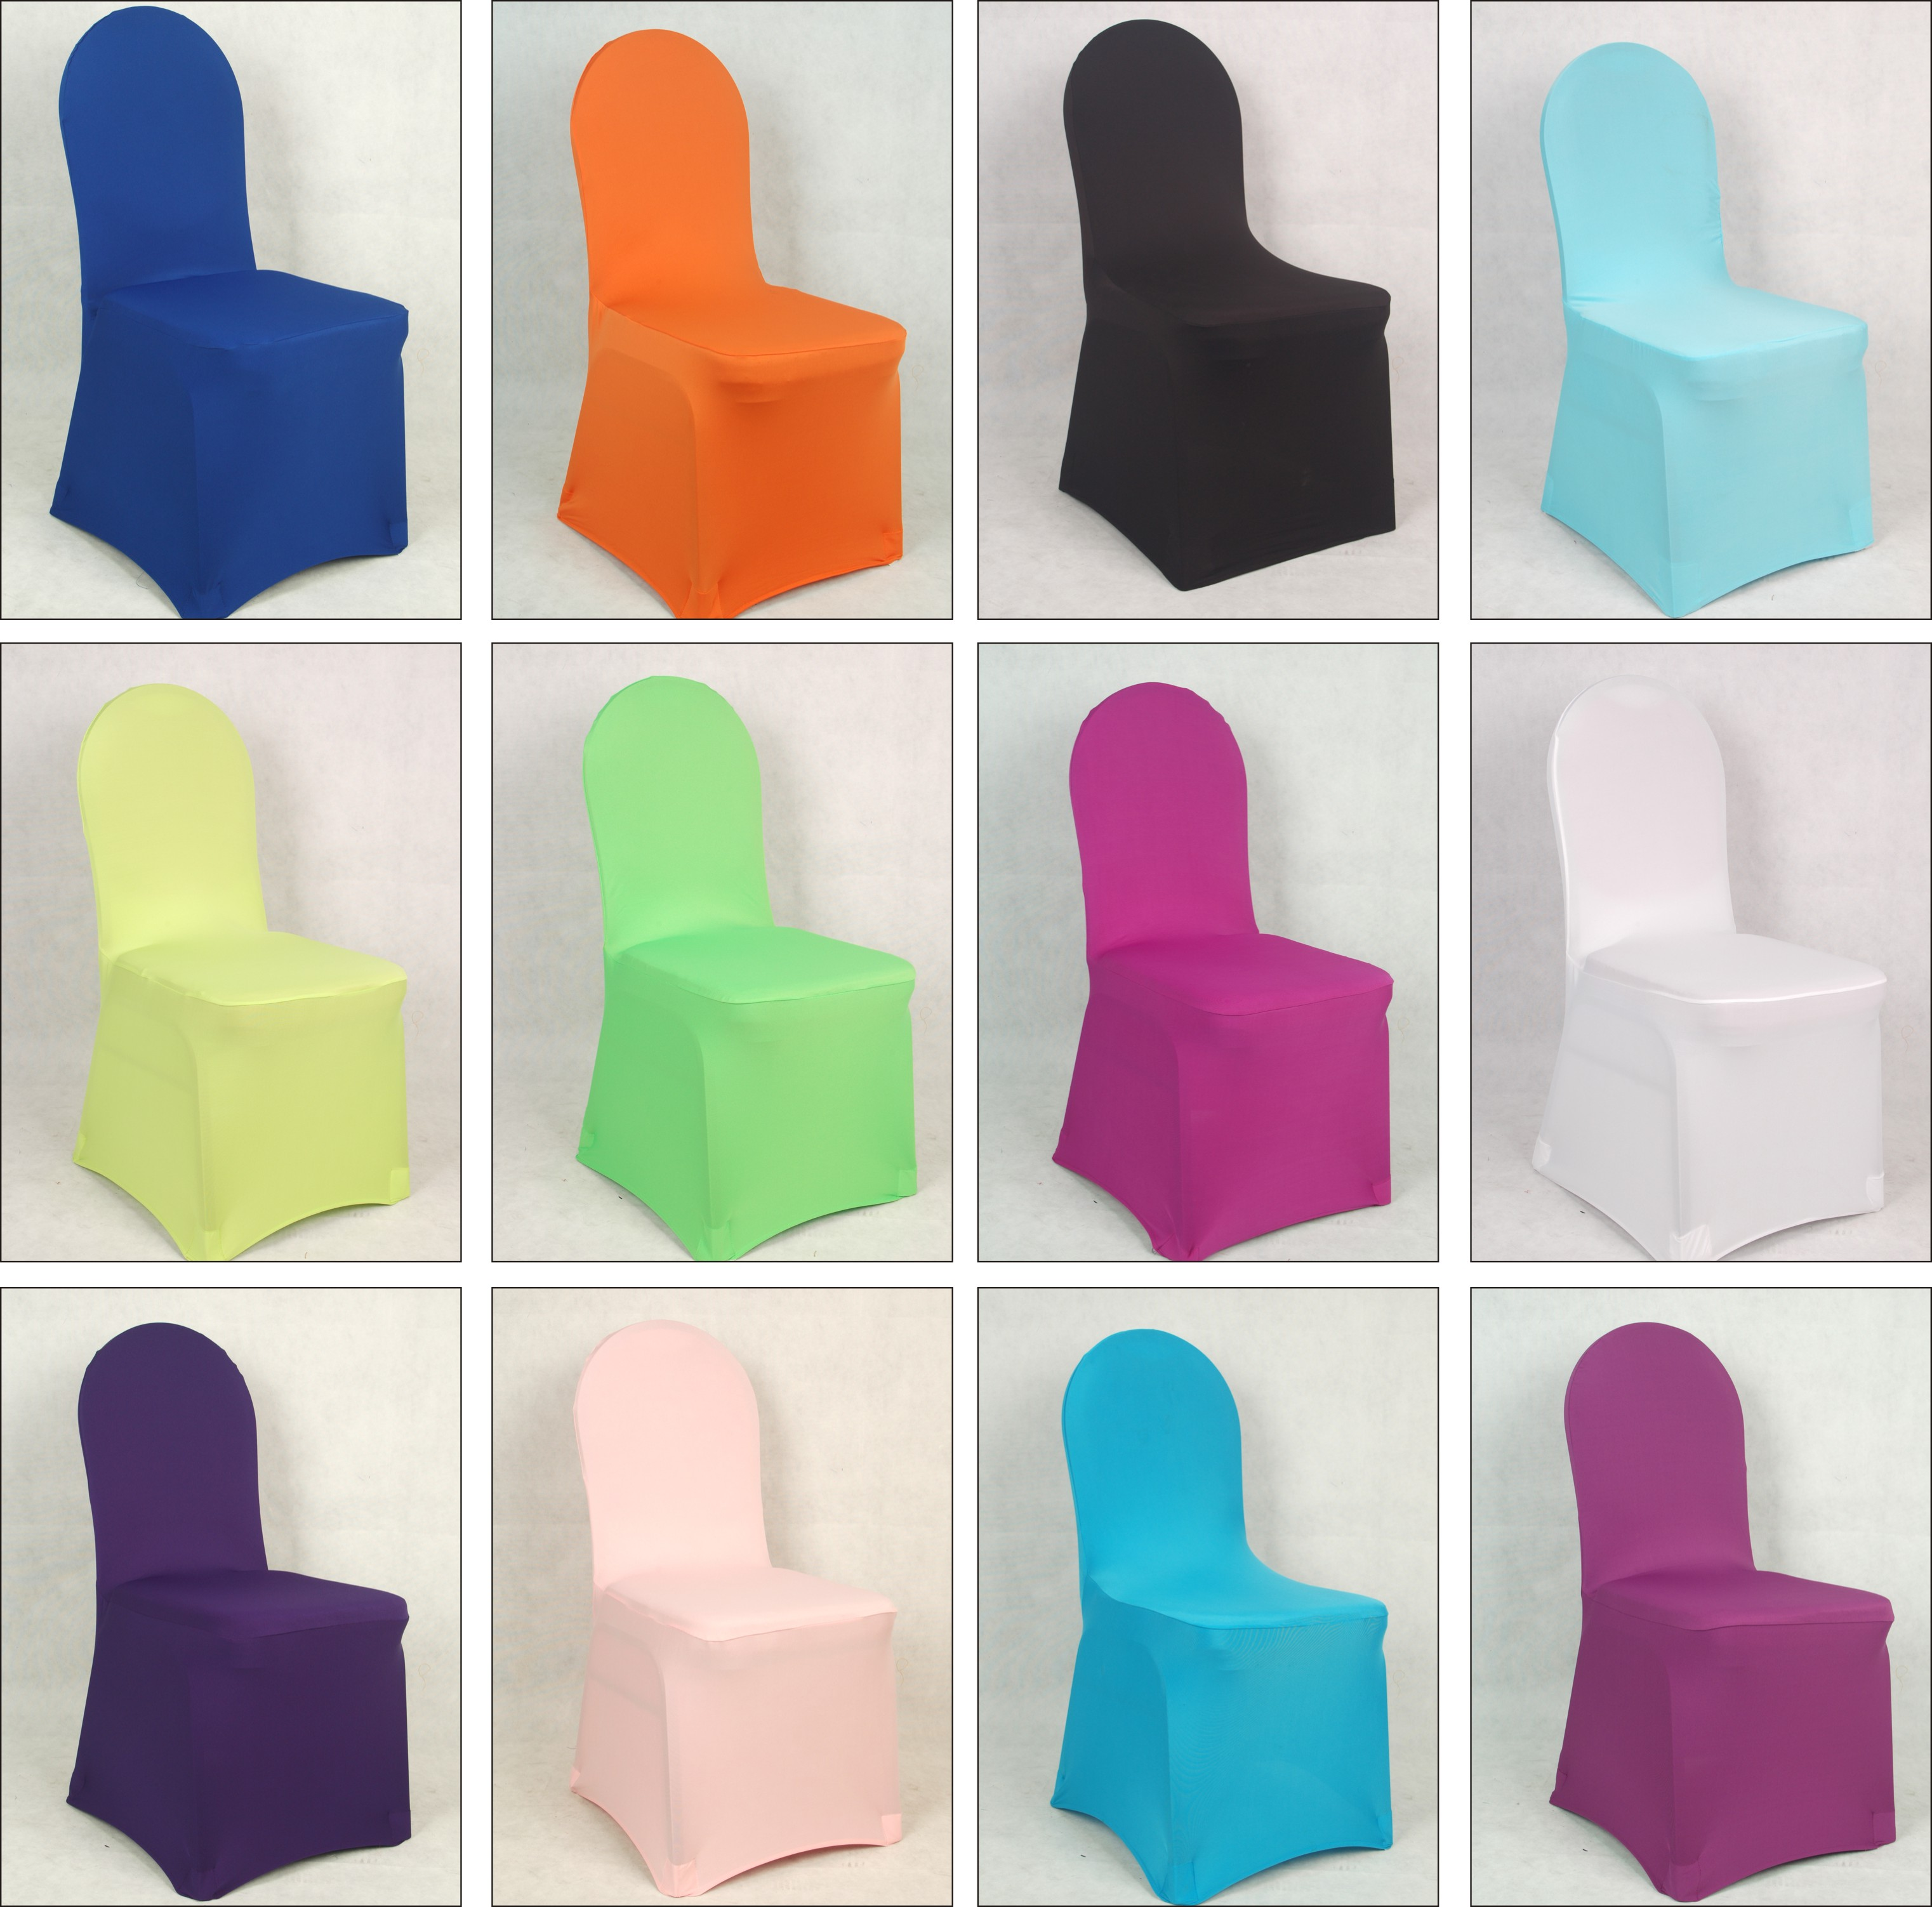 100 pcs spanex lycra elastic wedding chair cover for hotel banquet chair covers wholesale and retail